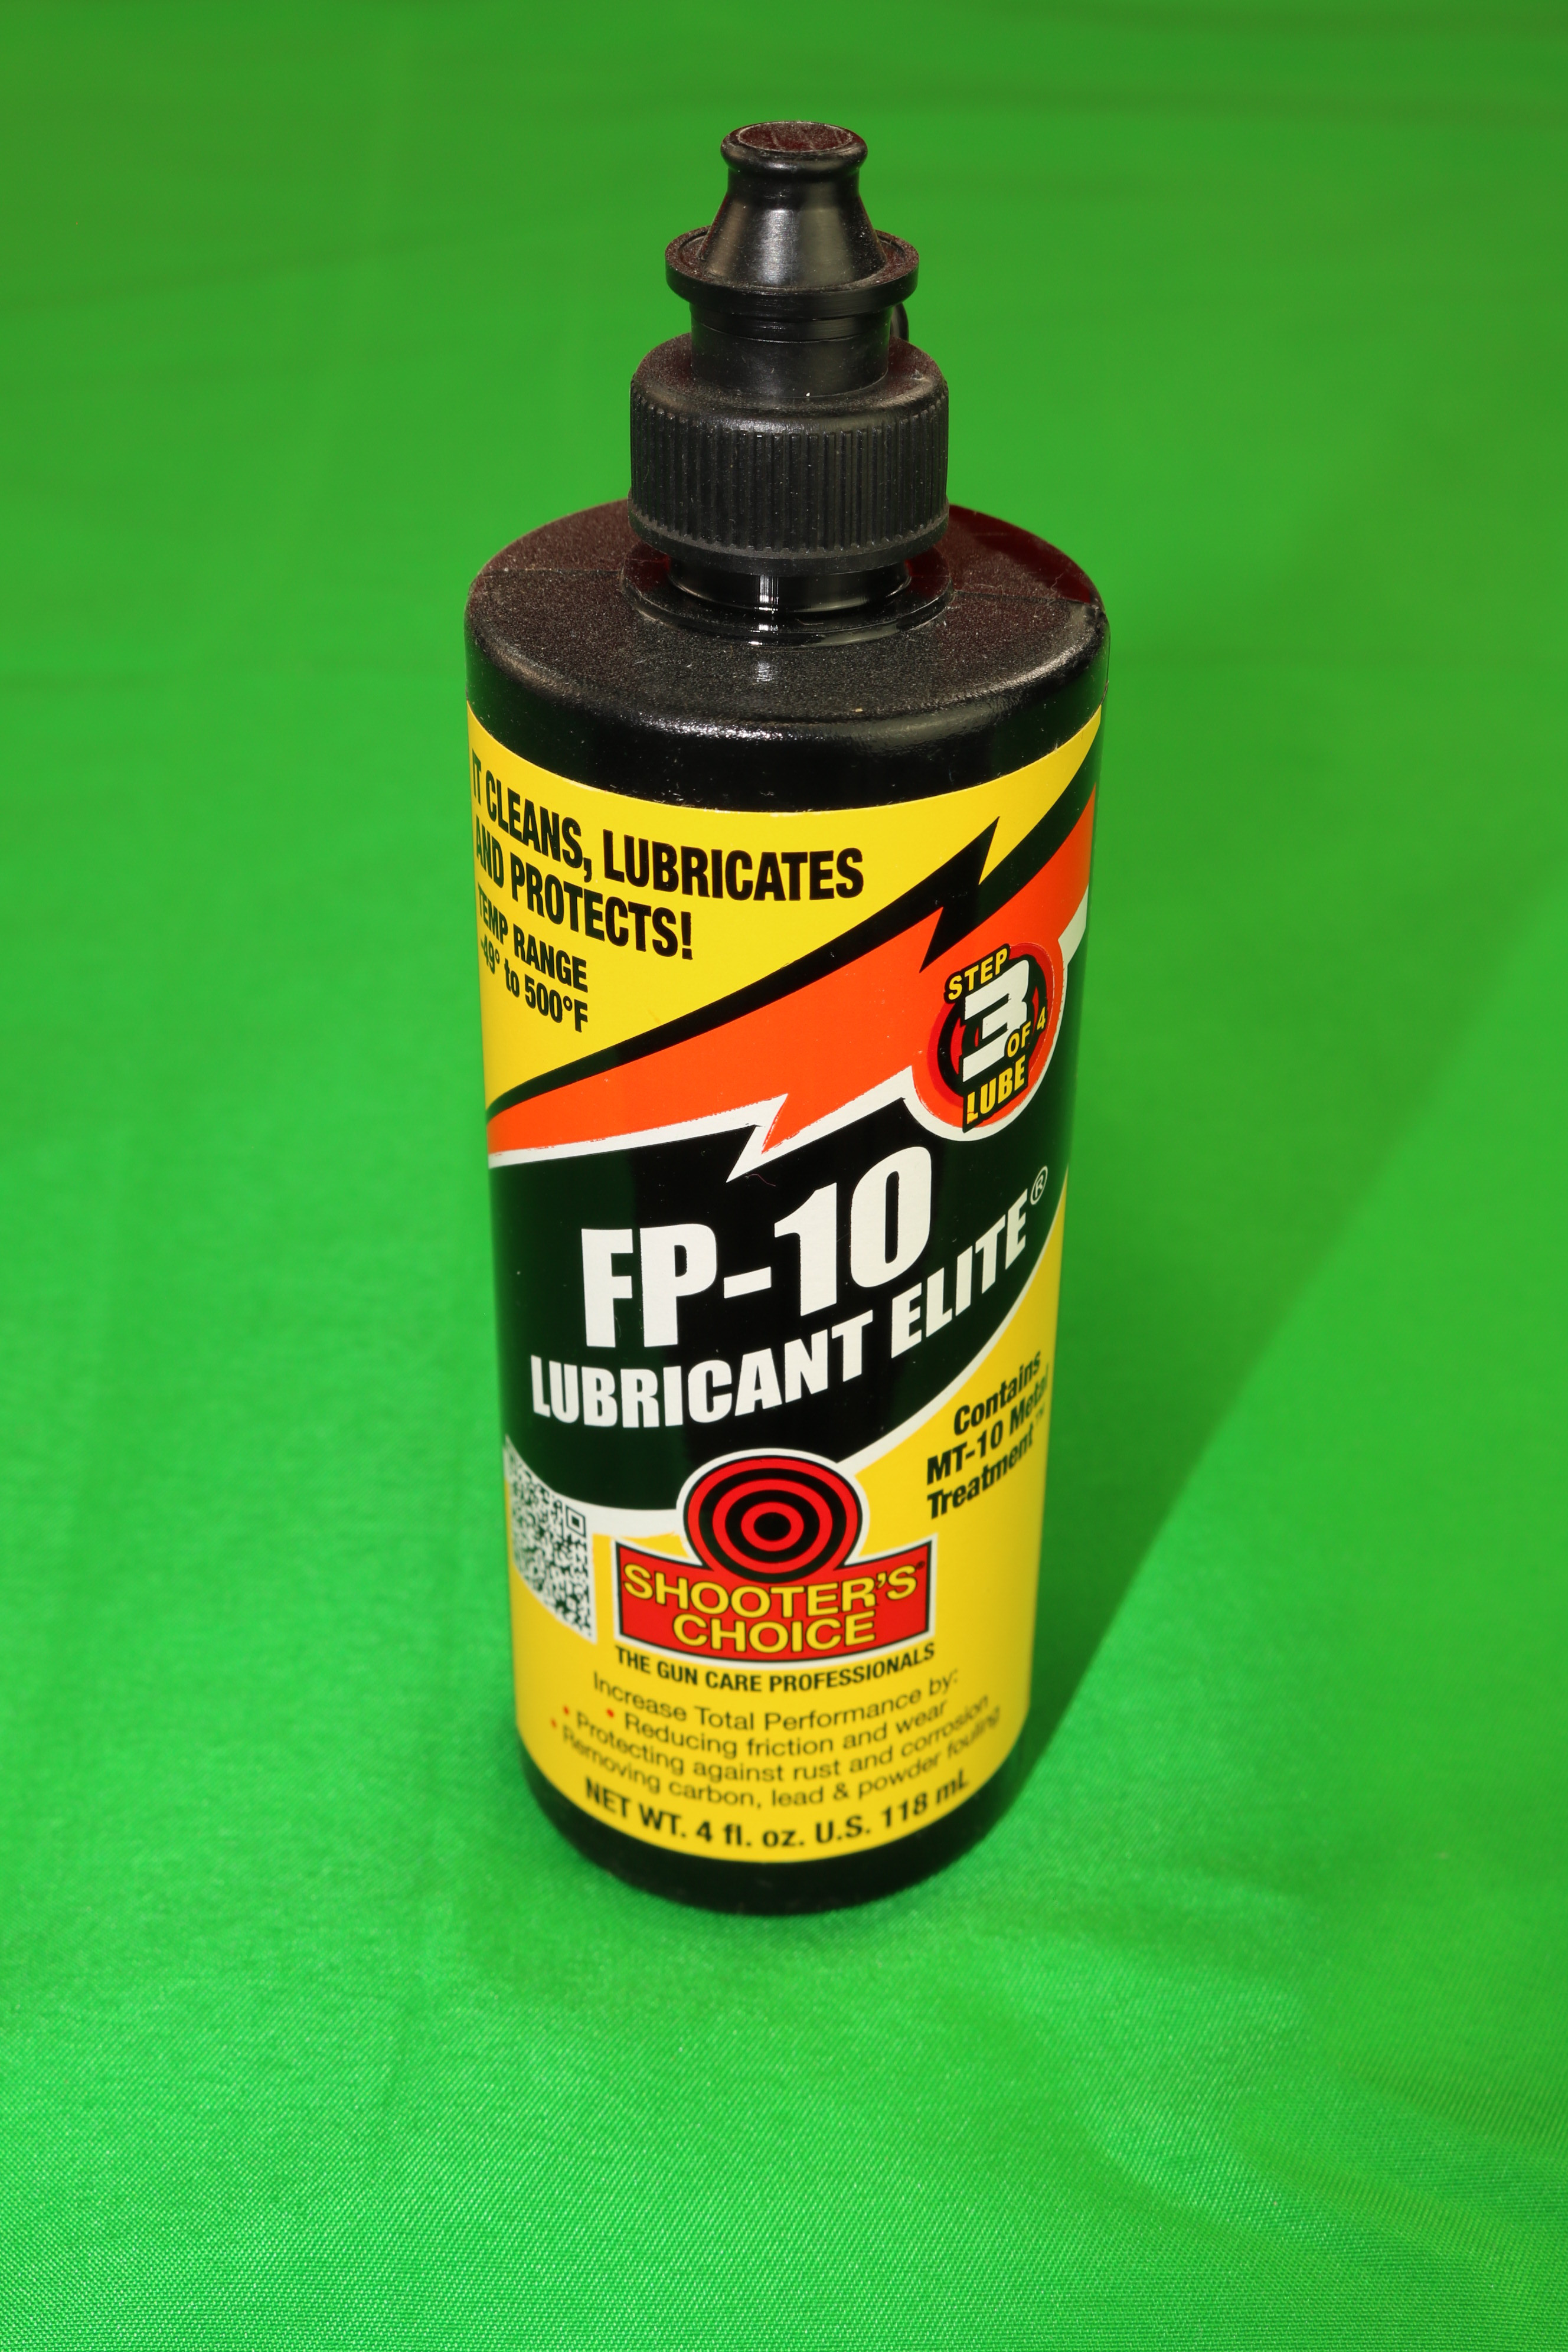 Shooters Choice FP-10 Lubricant Elite (4 oz)